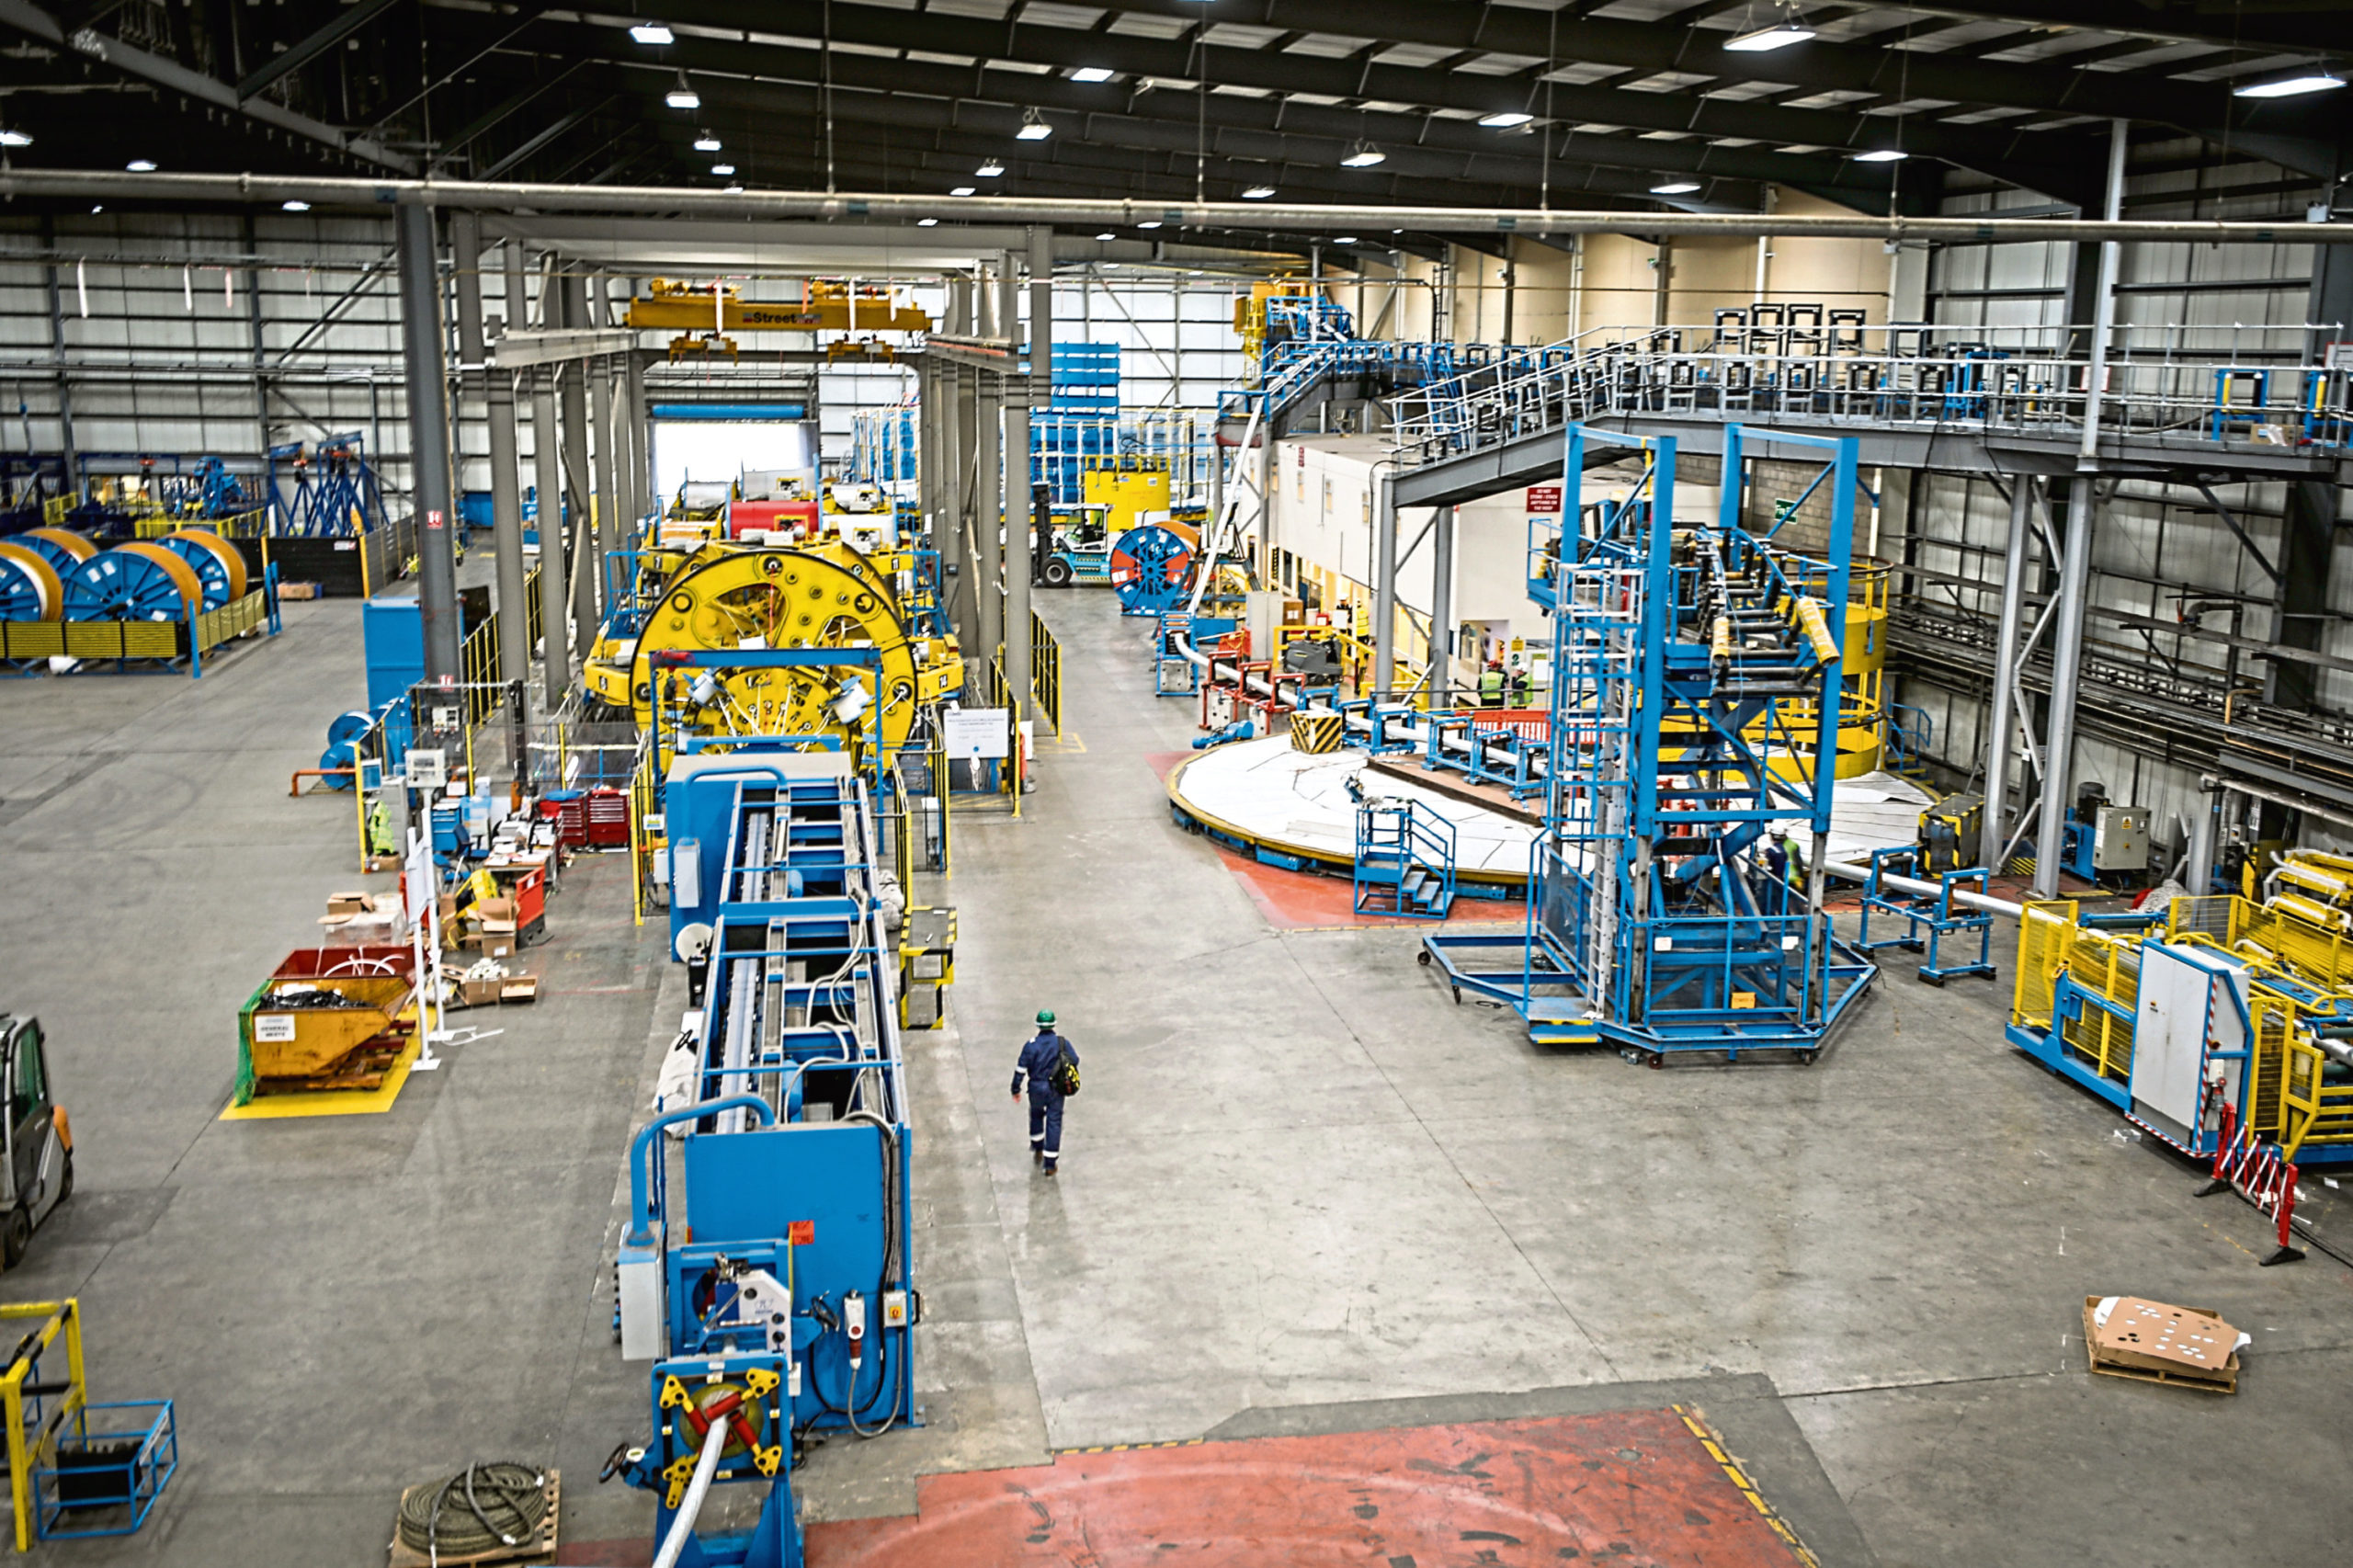 An overview of Oceaneerings facility at the Port of Rosyth.